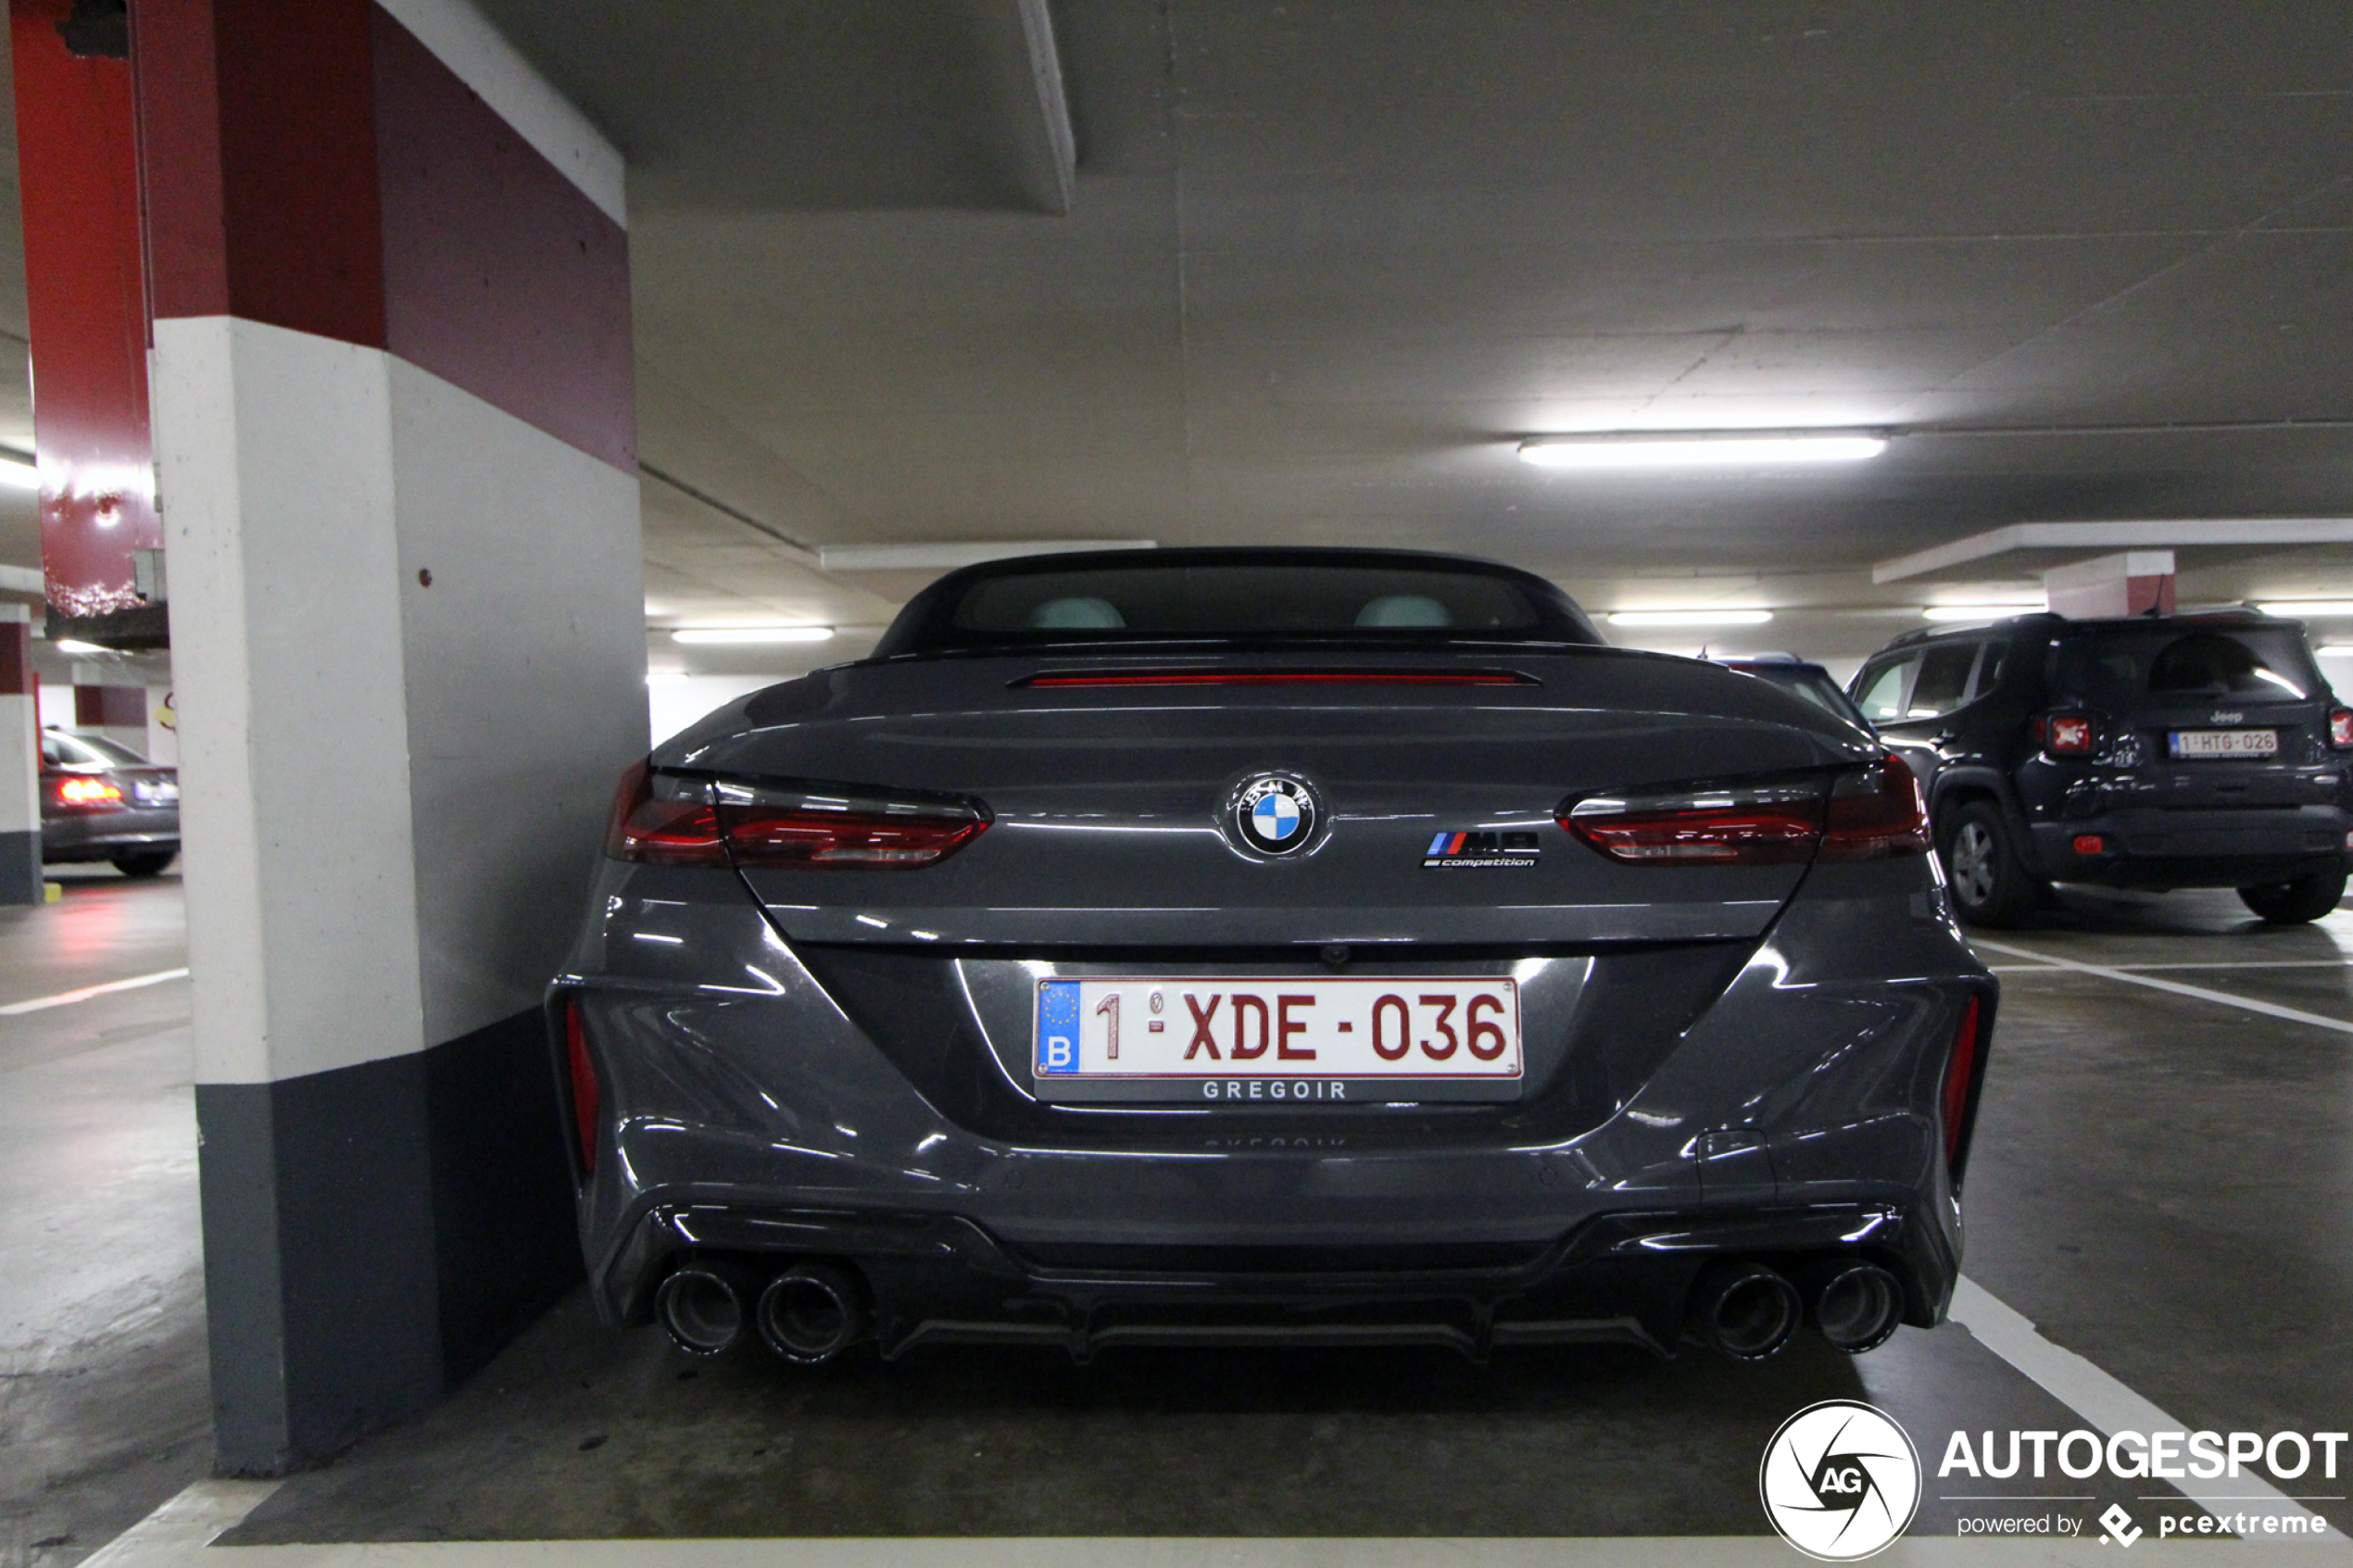 Gespot: BMW M8 Convertible Competition